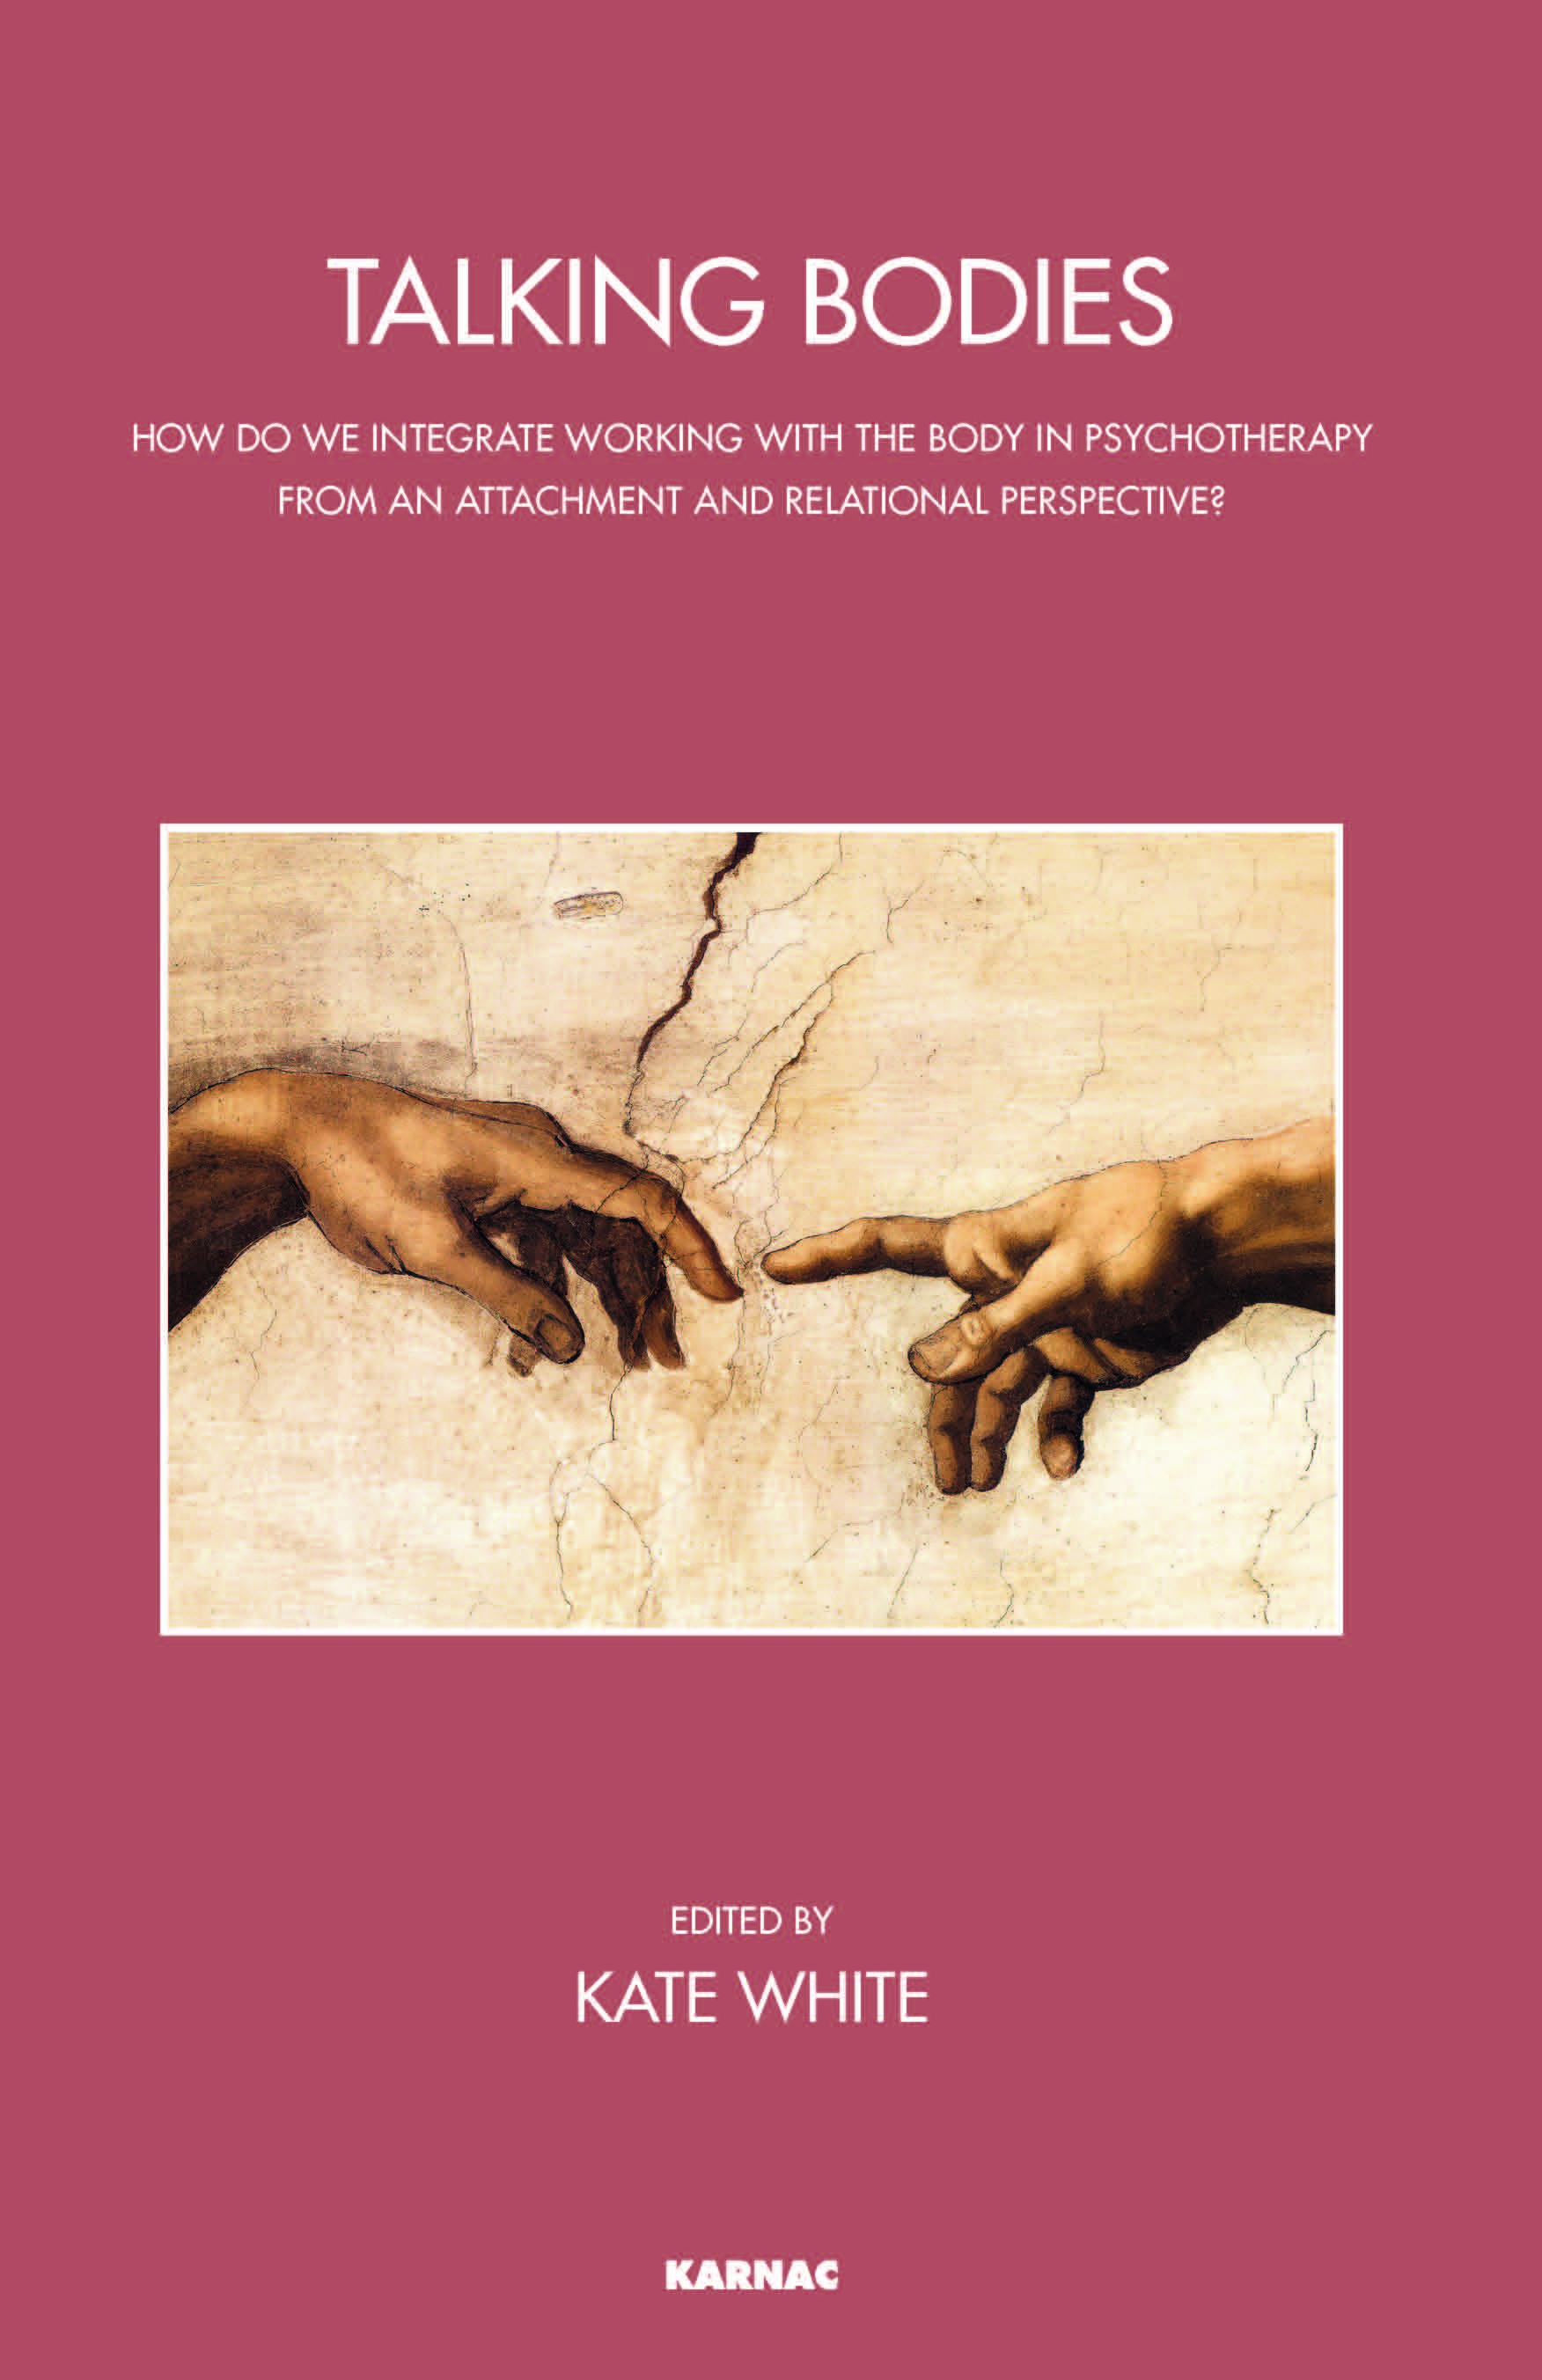 epub The Ethics of Modernism: Moral Ideas in Yeats, Eliot, Joyce, Woolf and